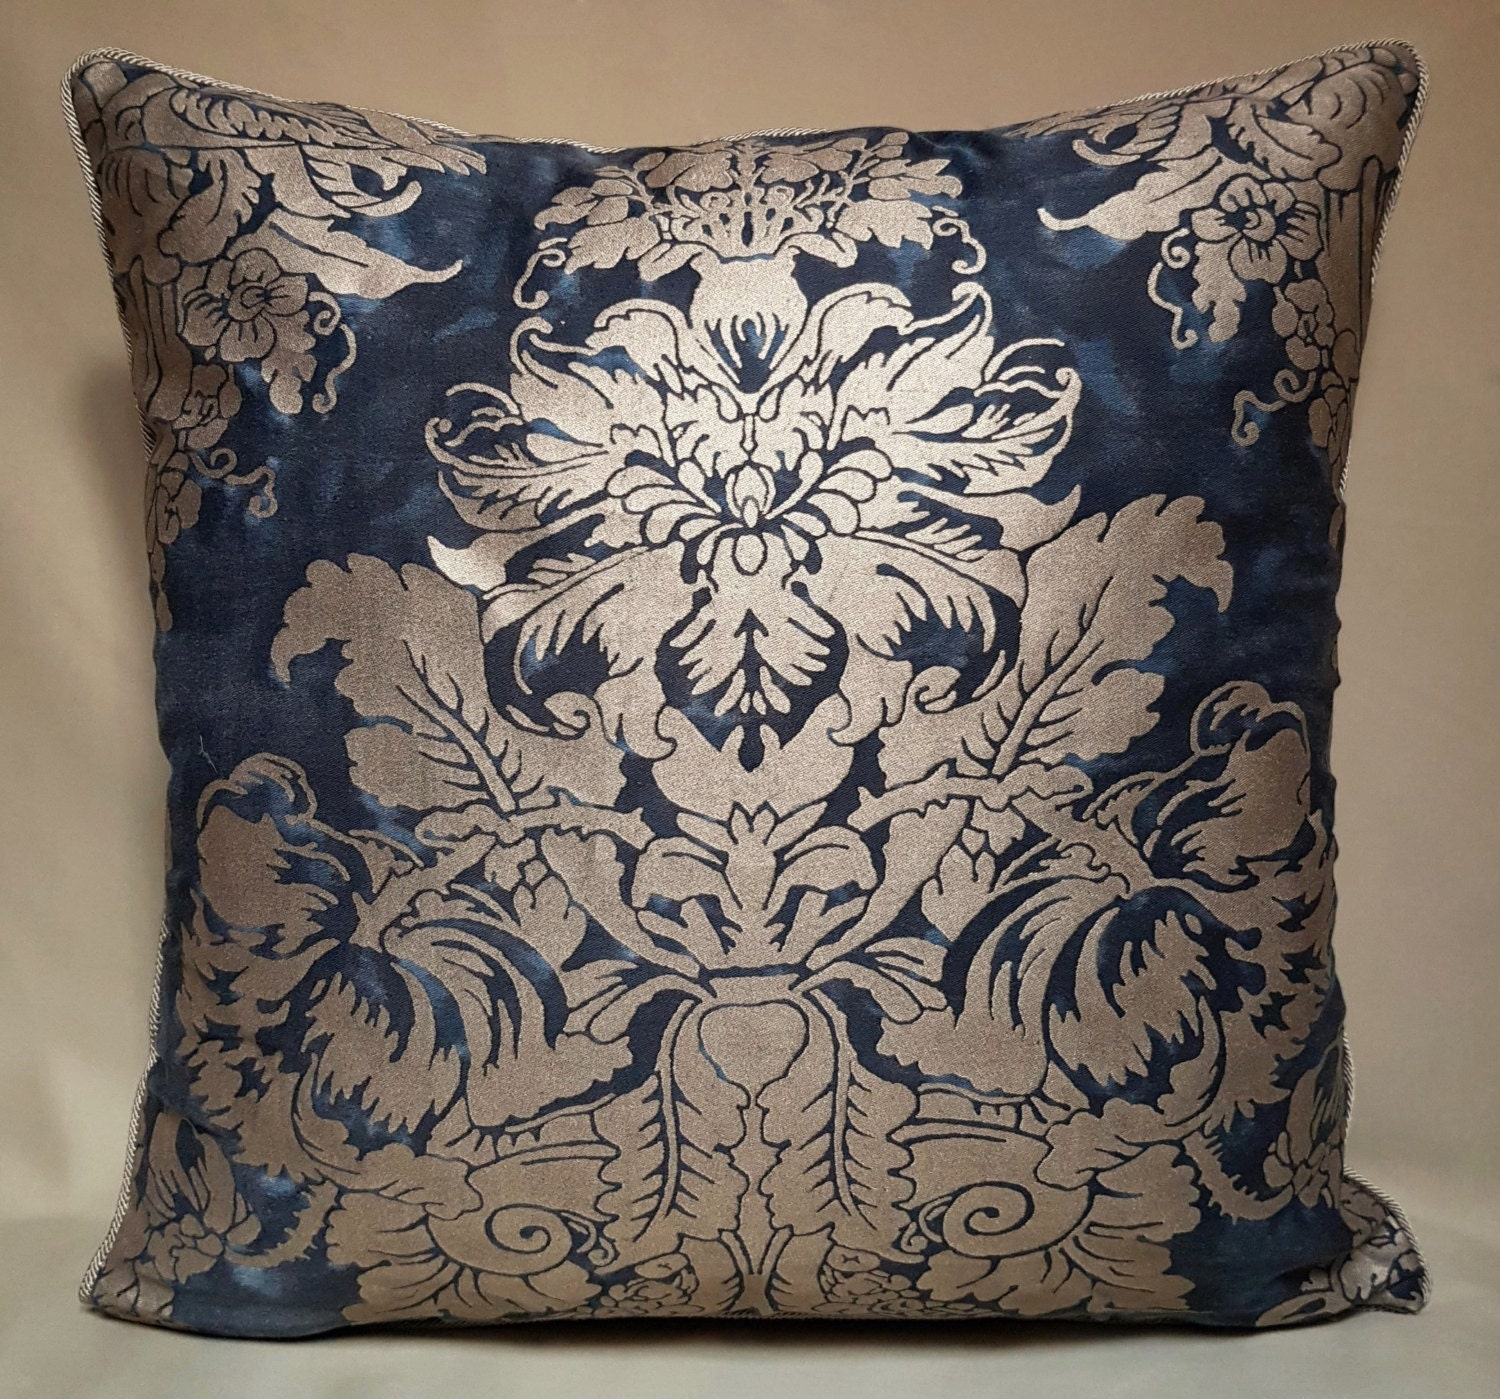 Throw Pillow Cover Fabric : Throw Pillow Cushion Cover Fortuny Fabric Midnight Blue